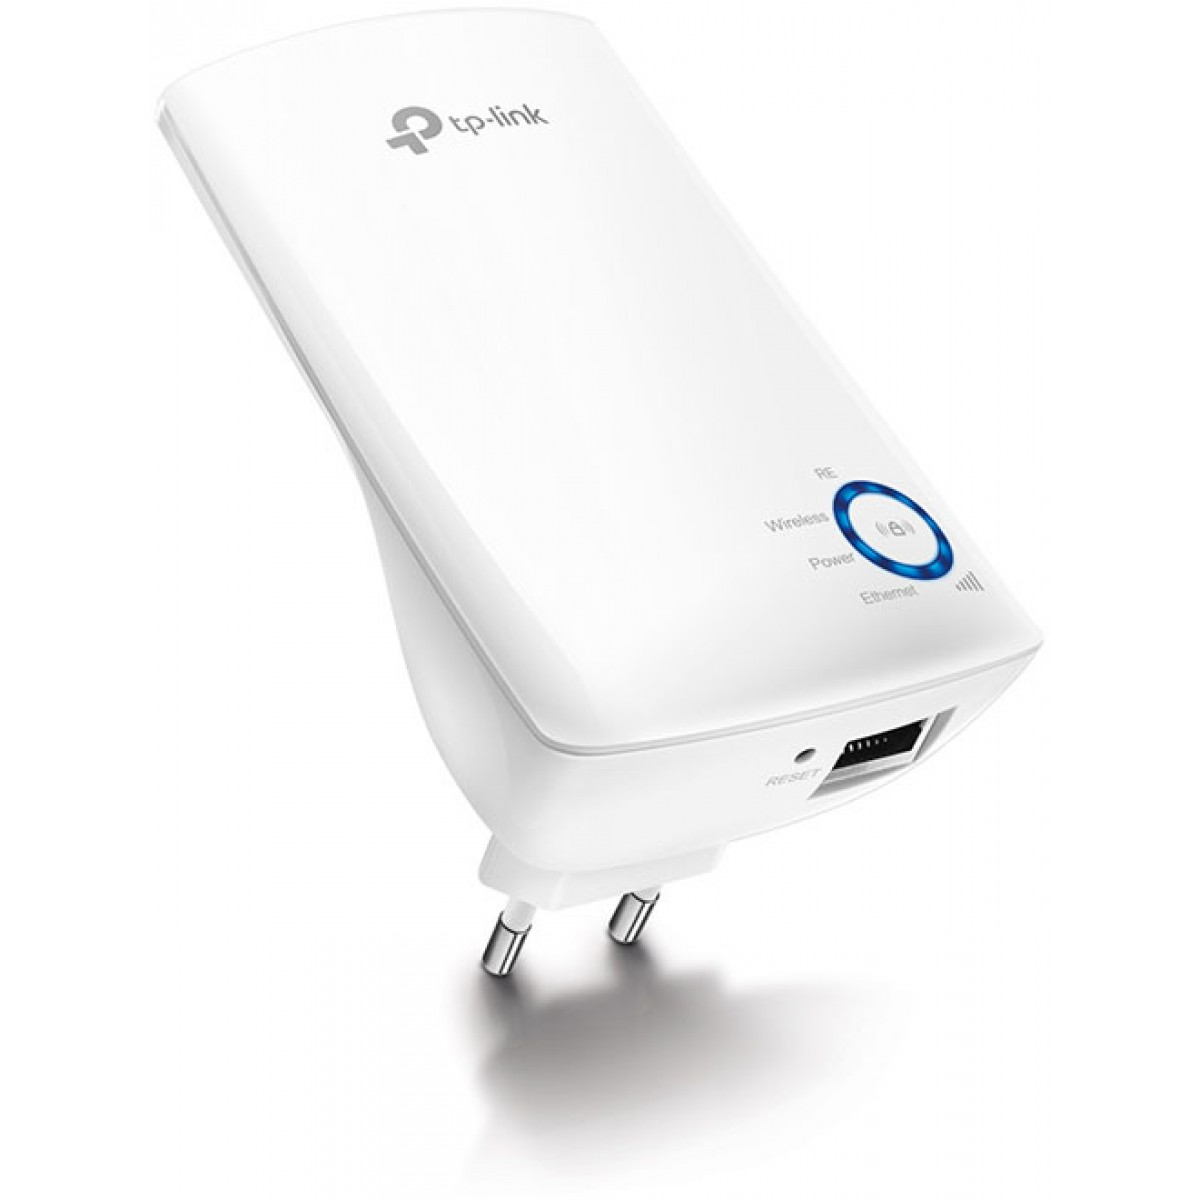 Repetidor Expansor TP-Link Wi-Fi Network 300Mbps, TL-WA850RE